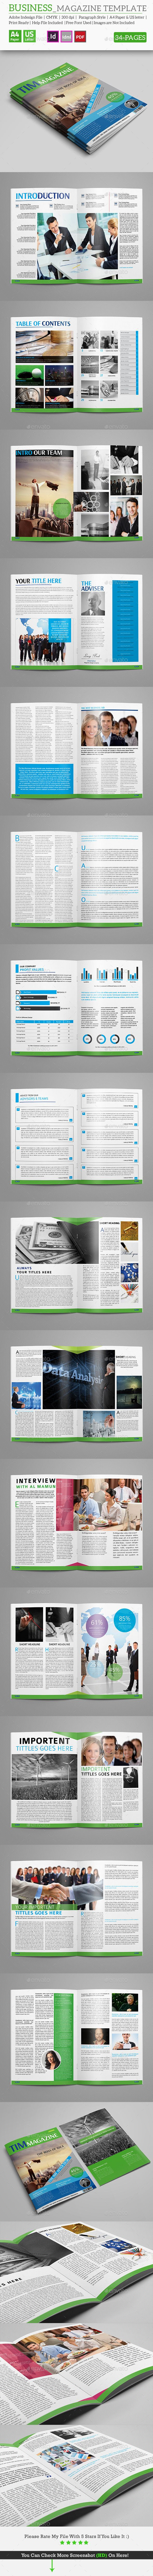 Business Magazine 34 Pages Template #design Download: http://graphicriver.net/item/business-magazine-template_34-pages/12506993?ref=ksioks